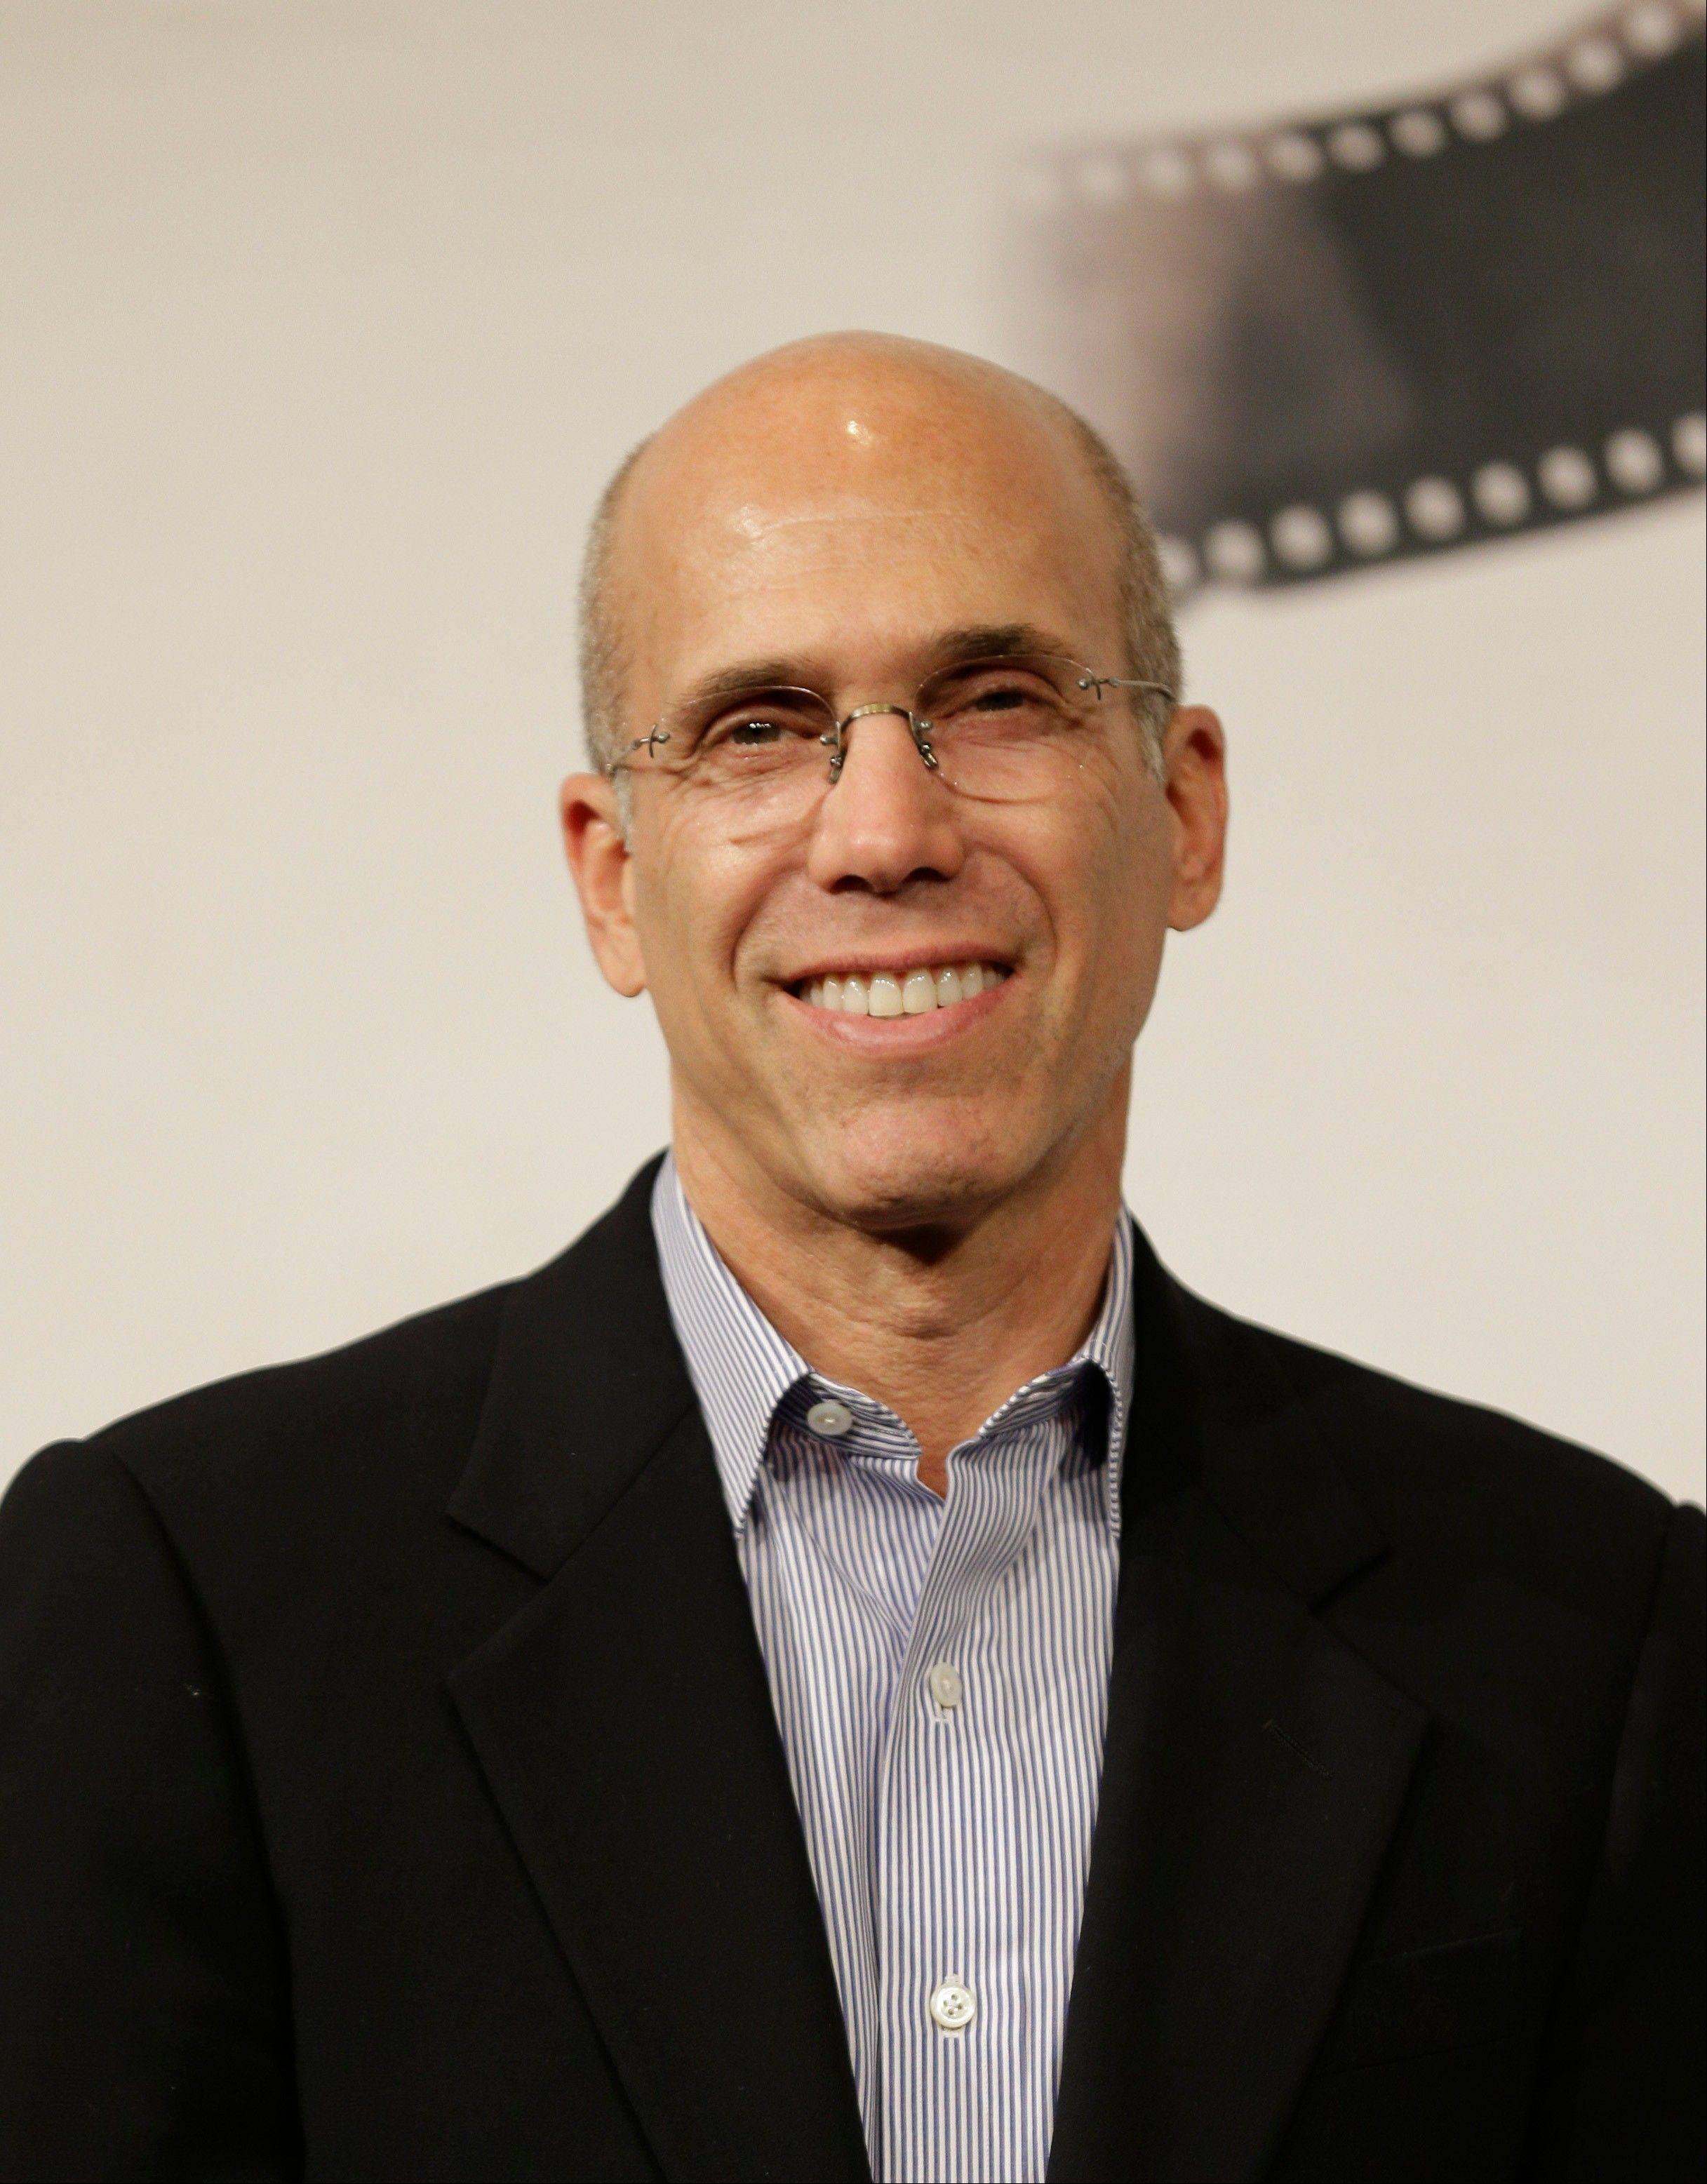 DreamWorks Animation CEO Jeffrey Katzenberg will accept their Oscar statuettes at the 4th annual Governors Awards from the Academy of Motion Picture Arts and Sciences' Board of Governors at a private ceremony Saturday.